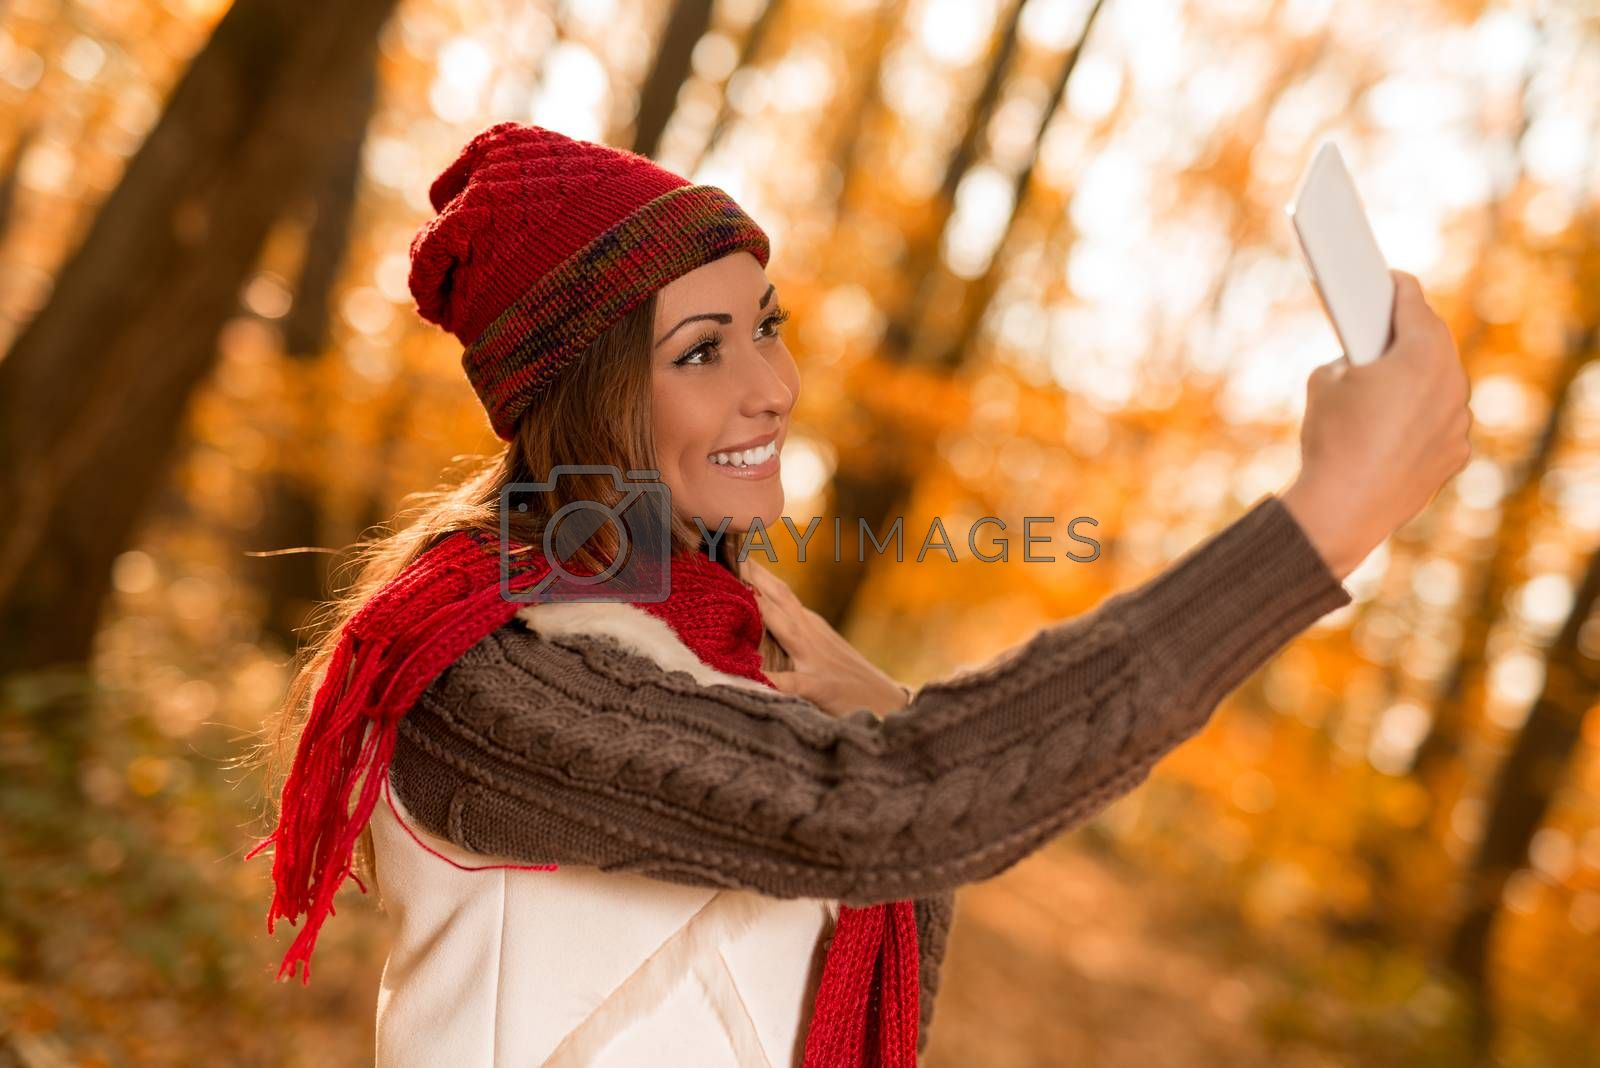 Portrait of a beautiful smiling woman taking selfie in forest in autumn.